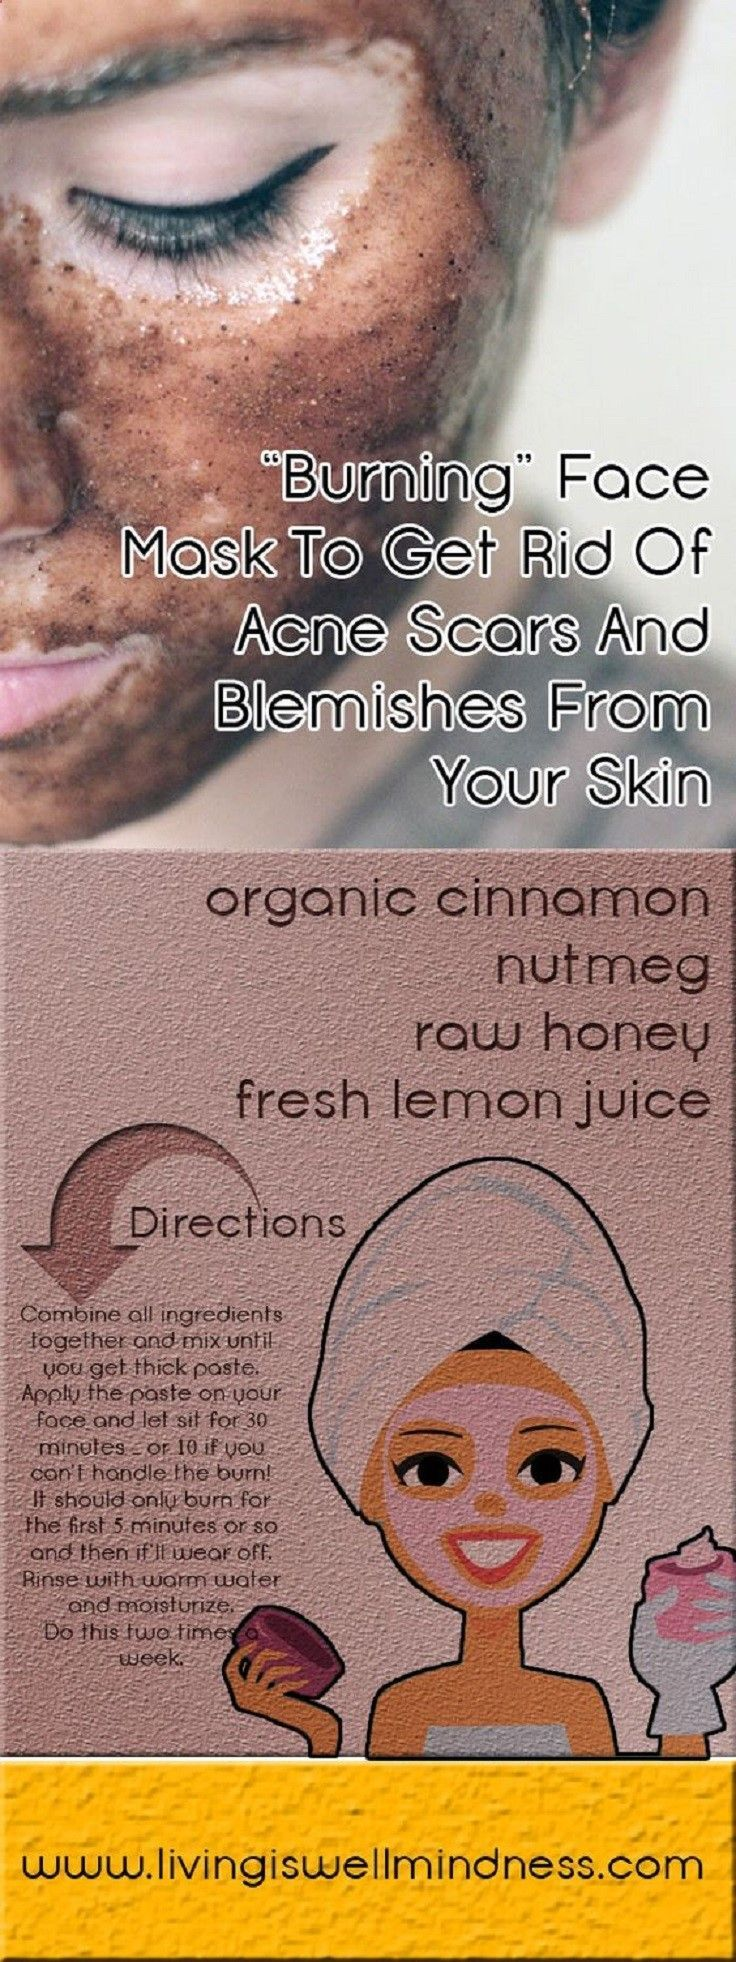 Burning Face Mask To Get Rid of Acne Scars And Ble…